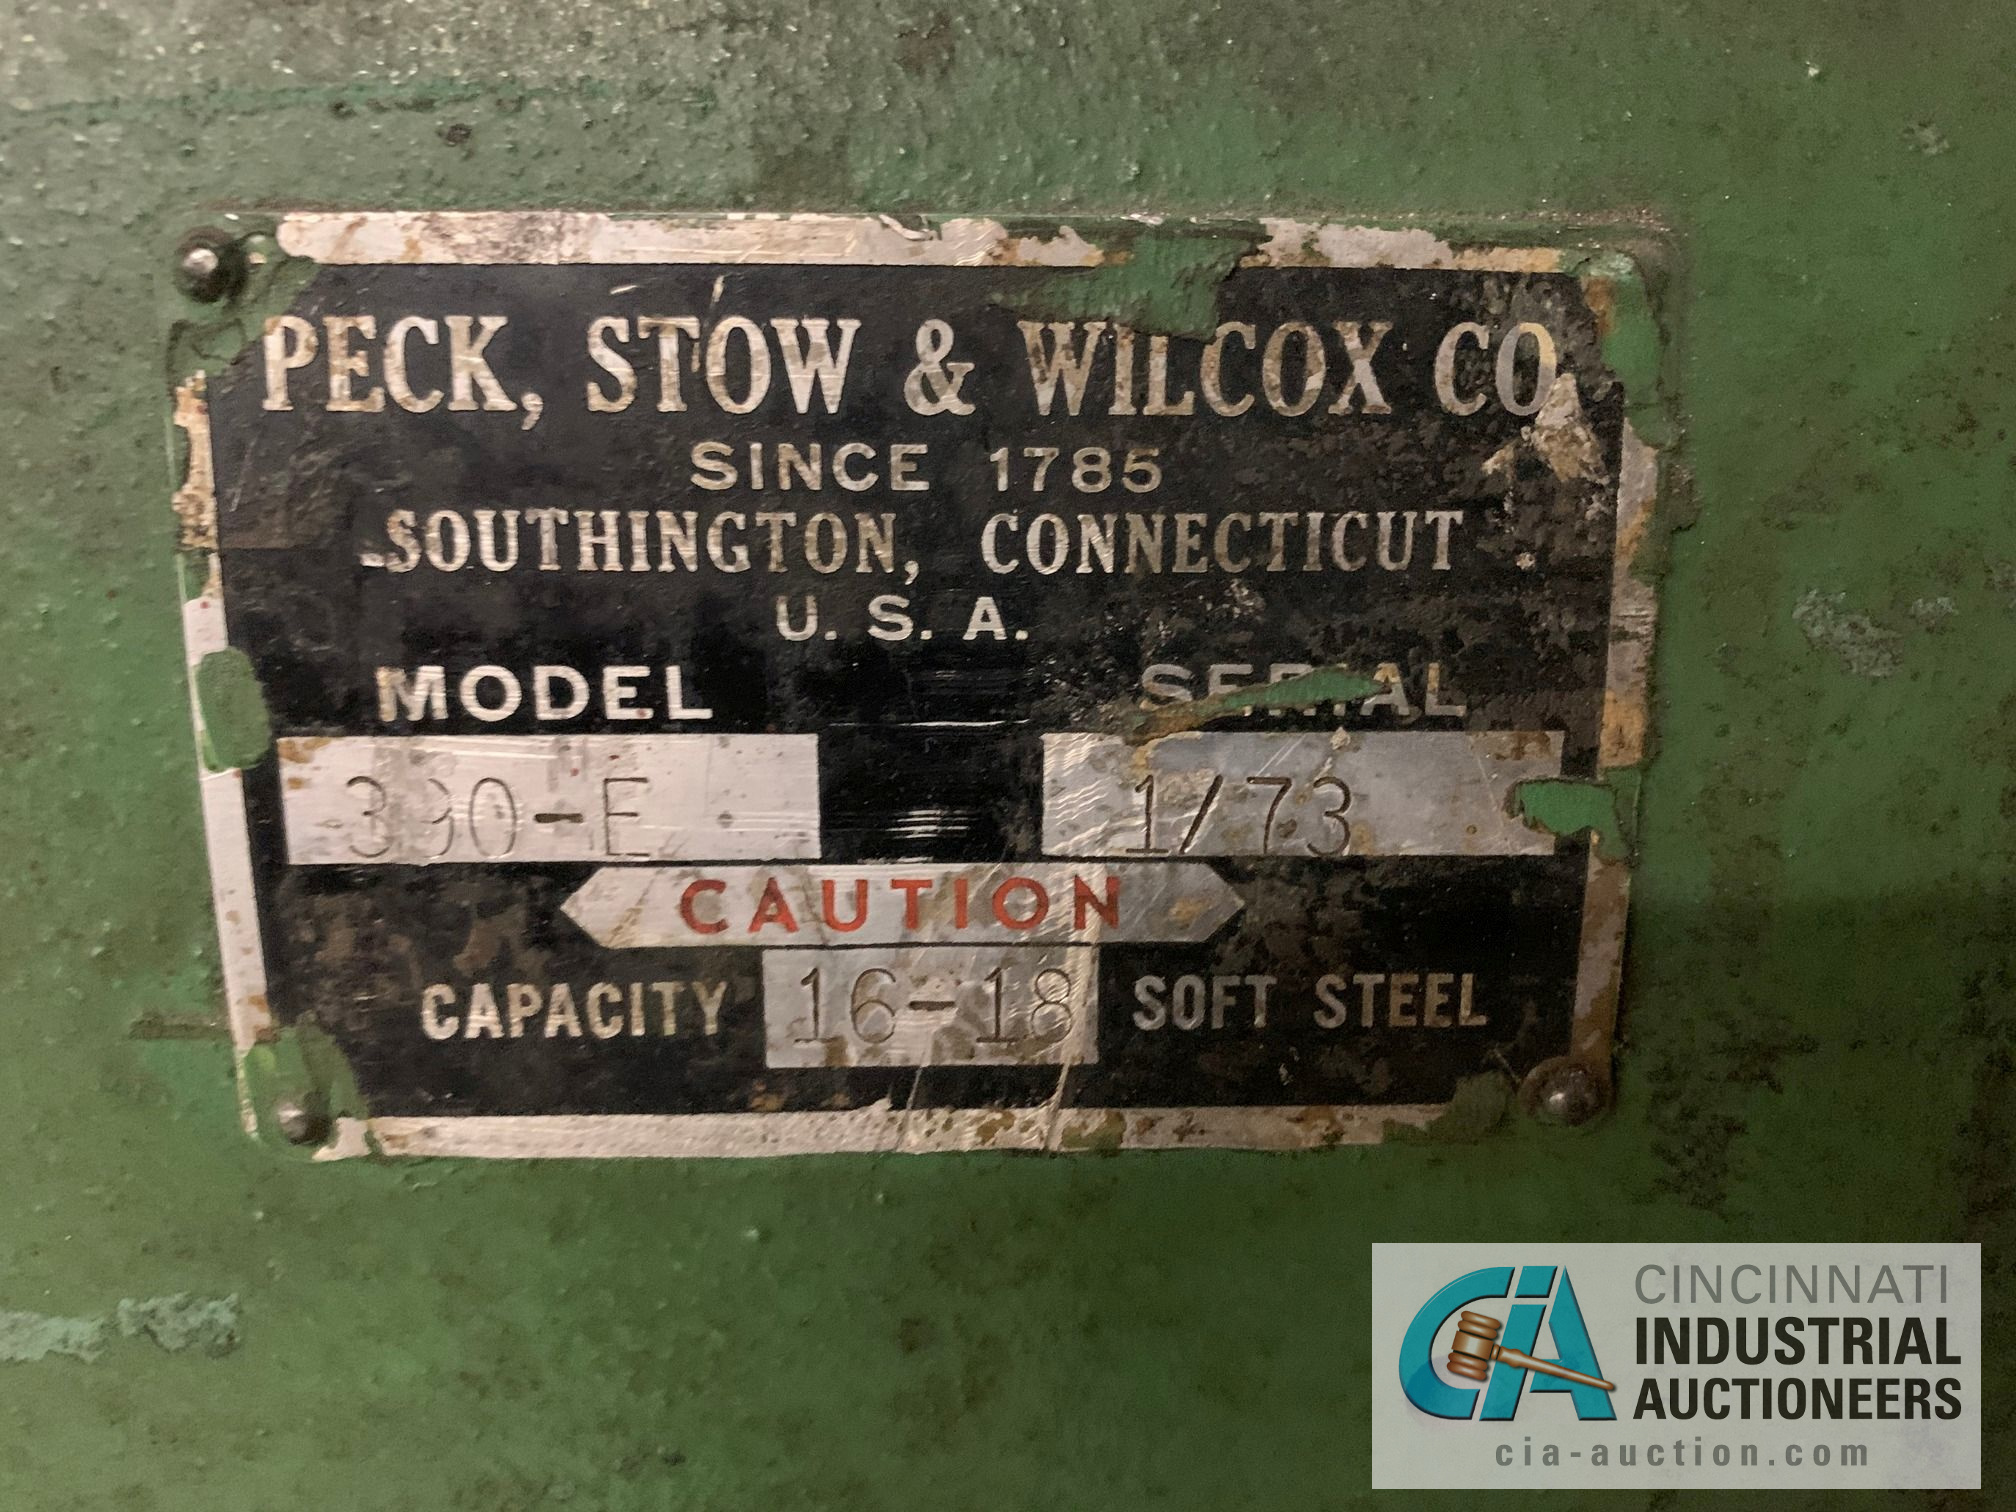 "36"" PECK, STOW AND WILCOX MODEL 390E HAND SLIP ROLL; S/N 1/73, CAPACITY 16-18 GA. - Image 2 of 5"